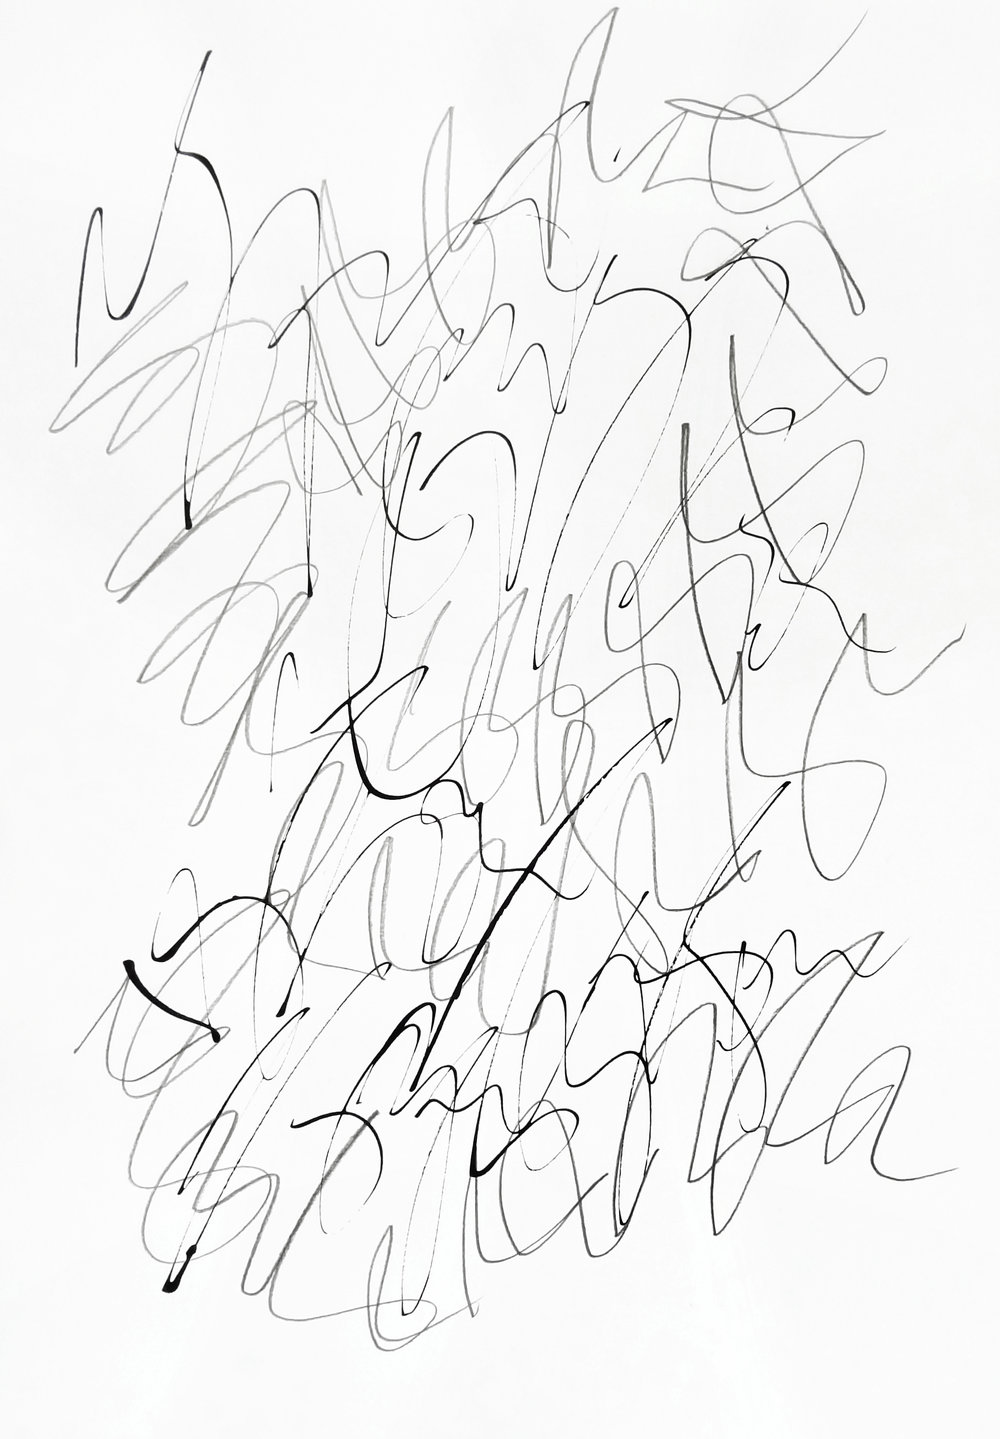 rhythm and flow studies, 2019 calligraphy ink and pencil on paper 42,0 x 29,7 cm (7-19)